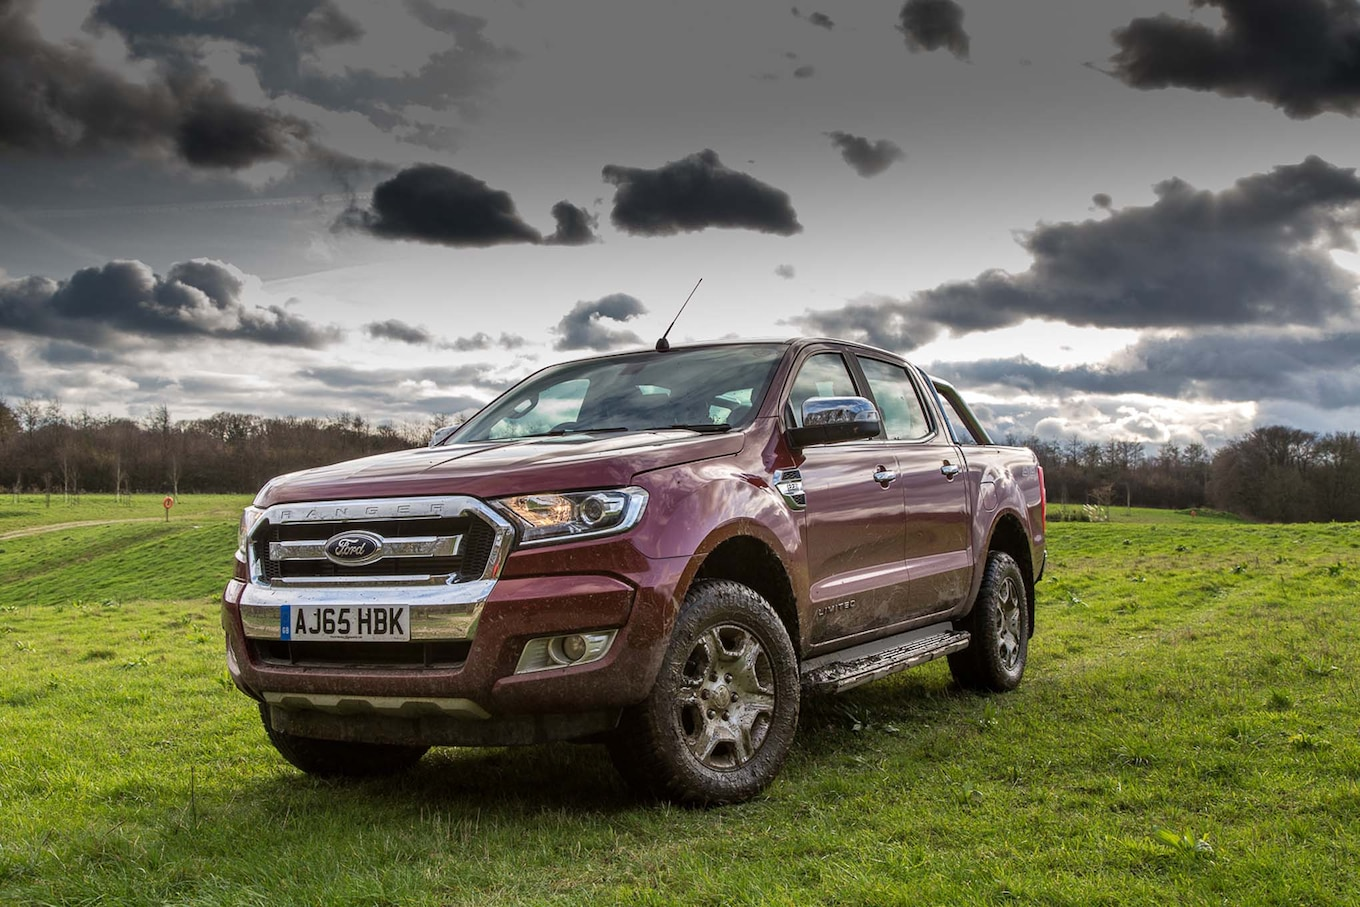 2019 Ford Ranger What To Expect From The New Small Truck